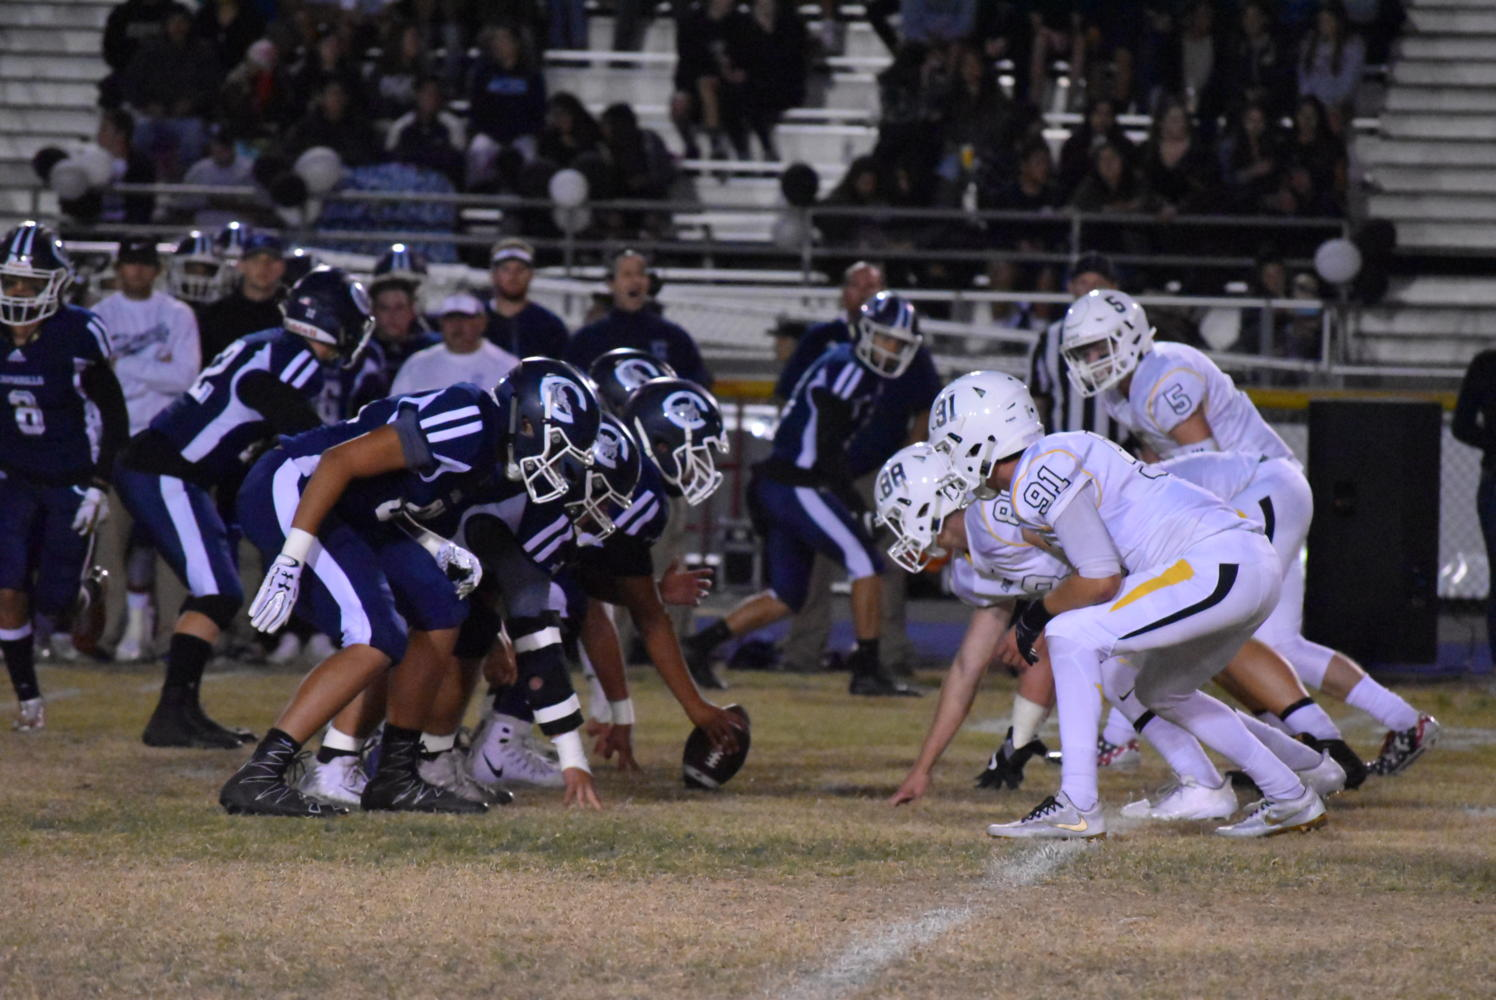 Cam High's varsity football team stands head to head with Ventura High School's varsity football team before the next down.